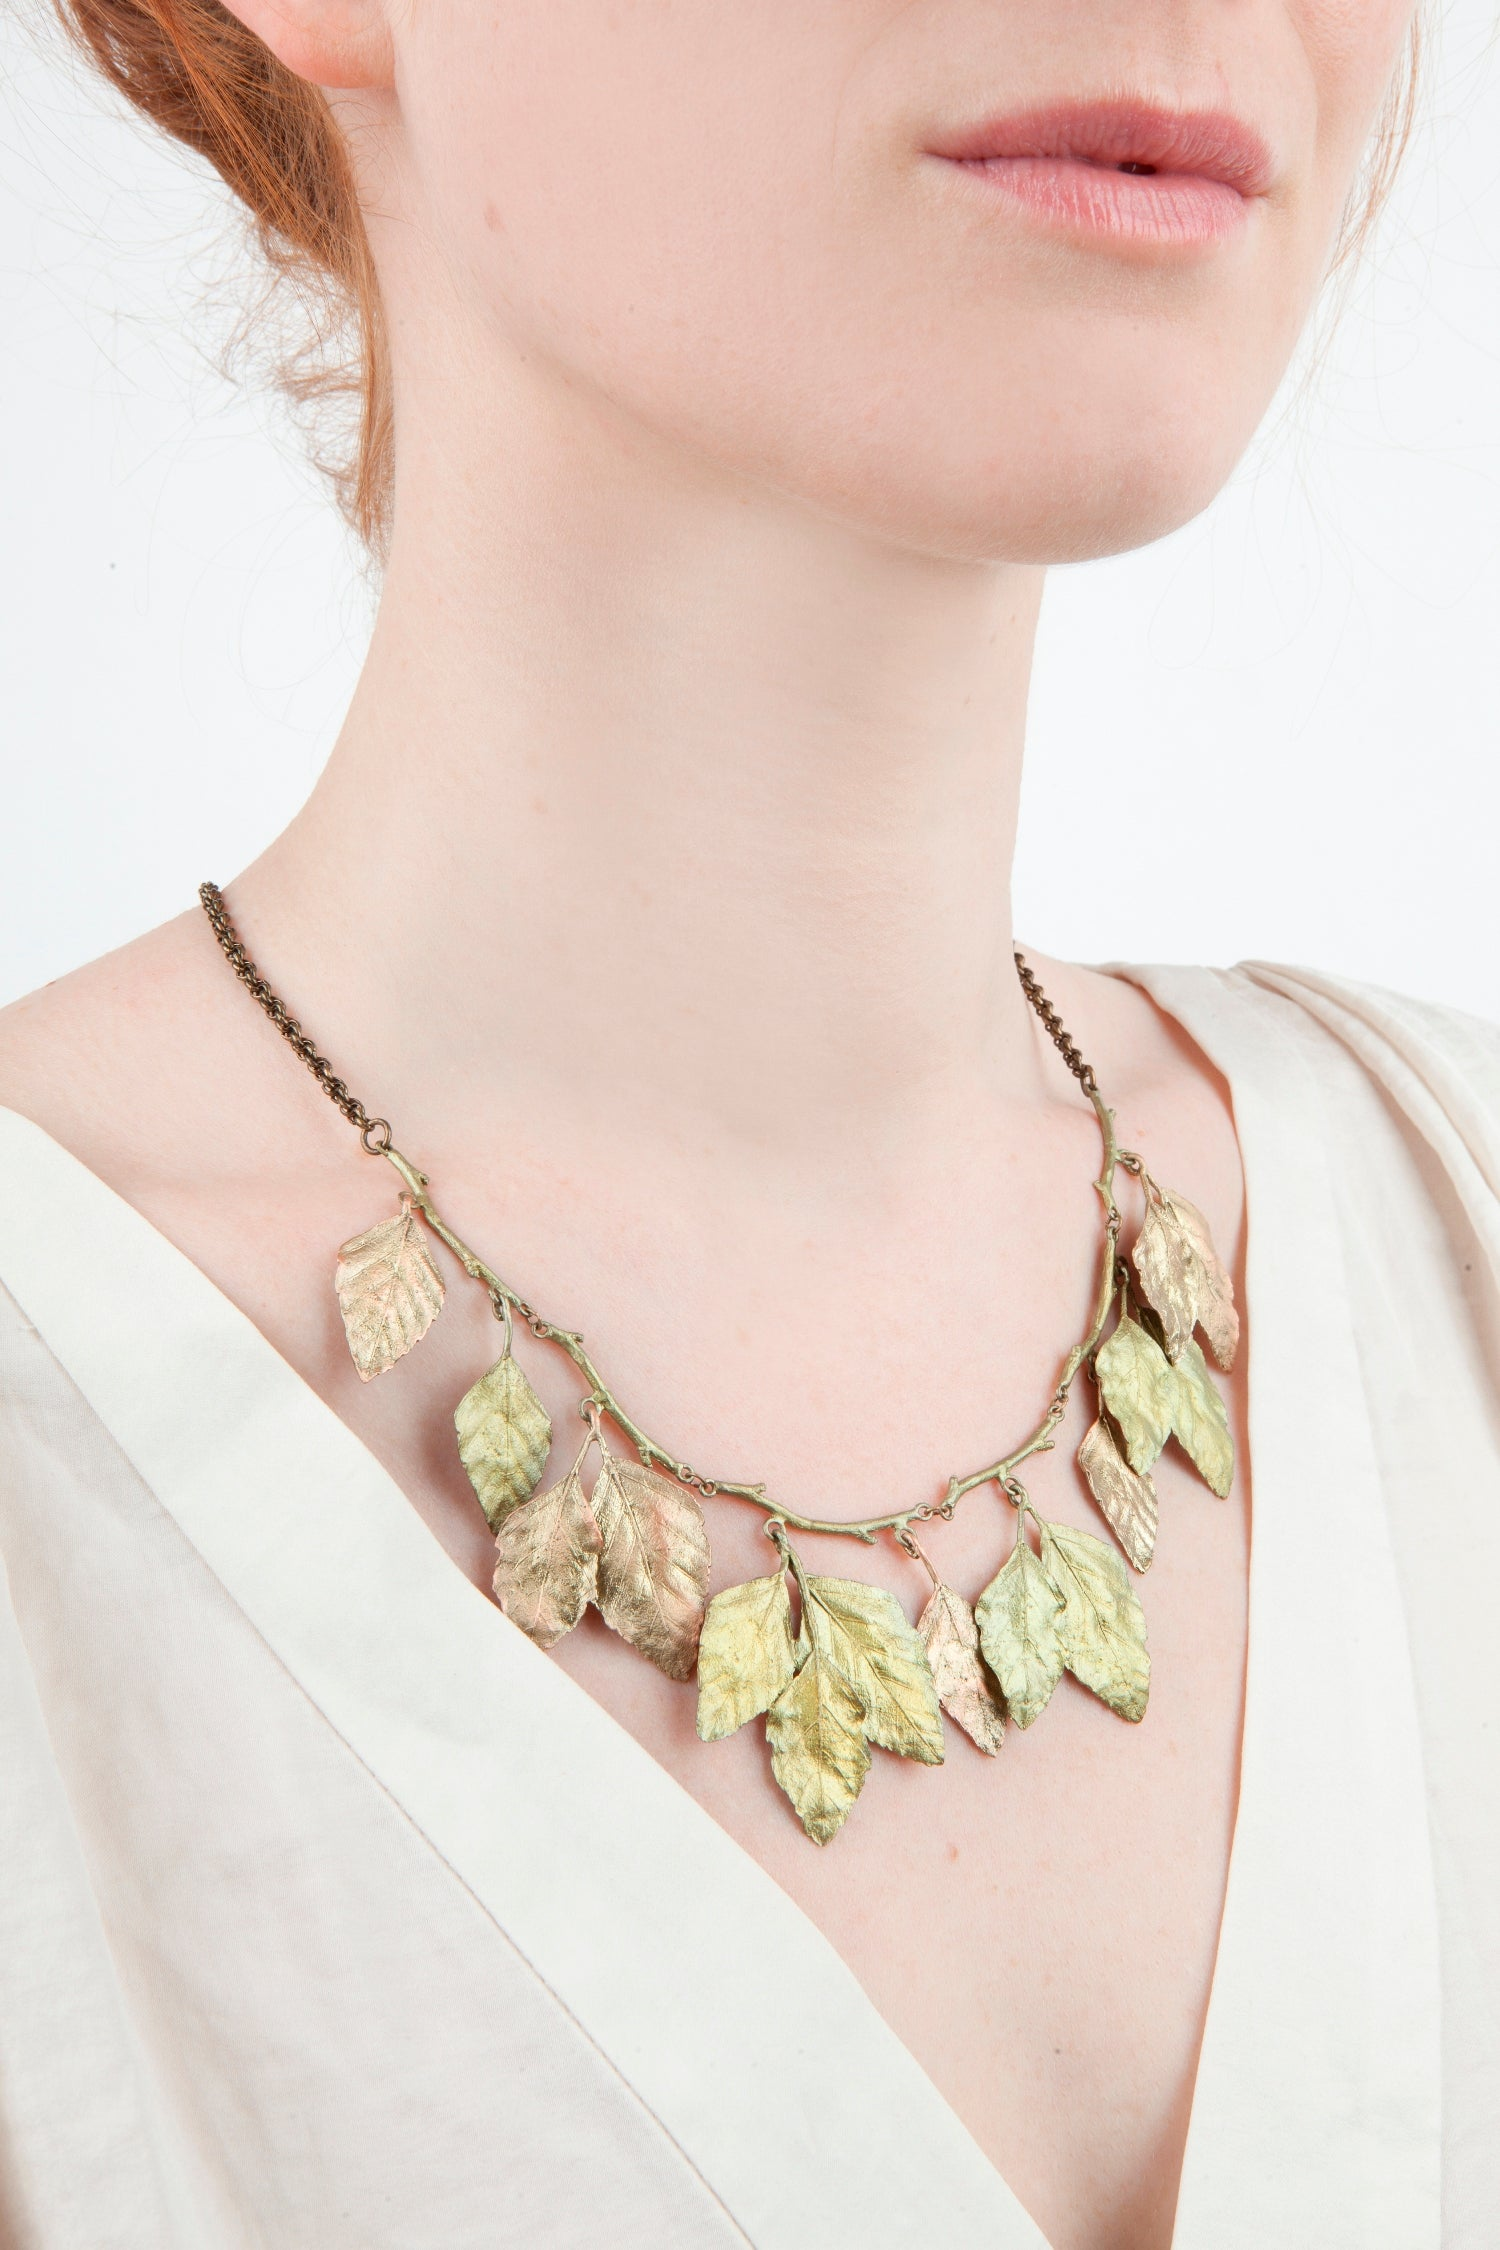 Autumn Birch Necklace - Statement